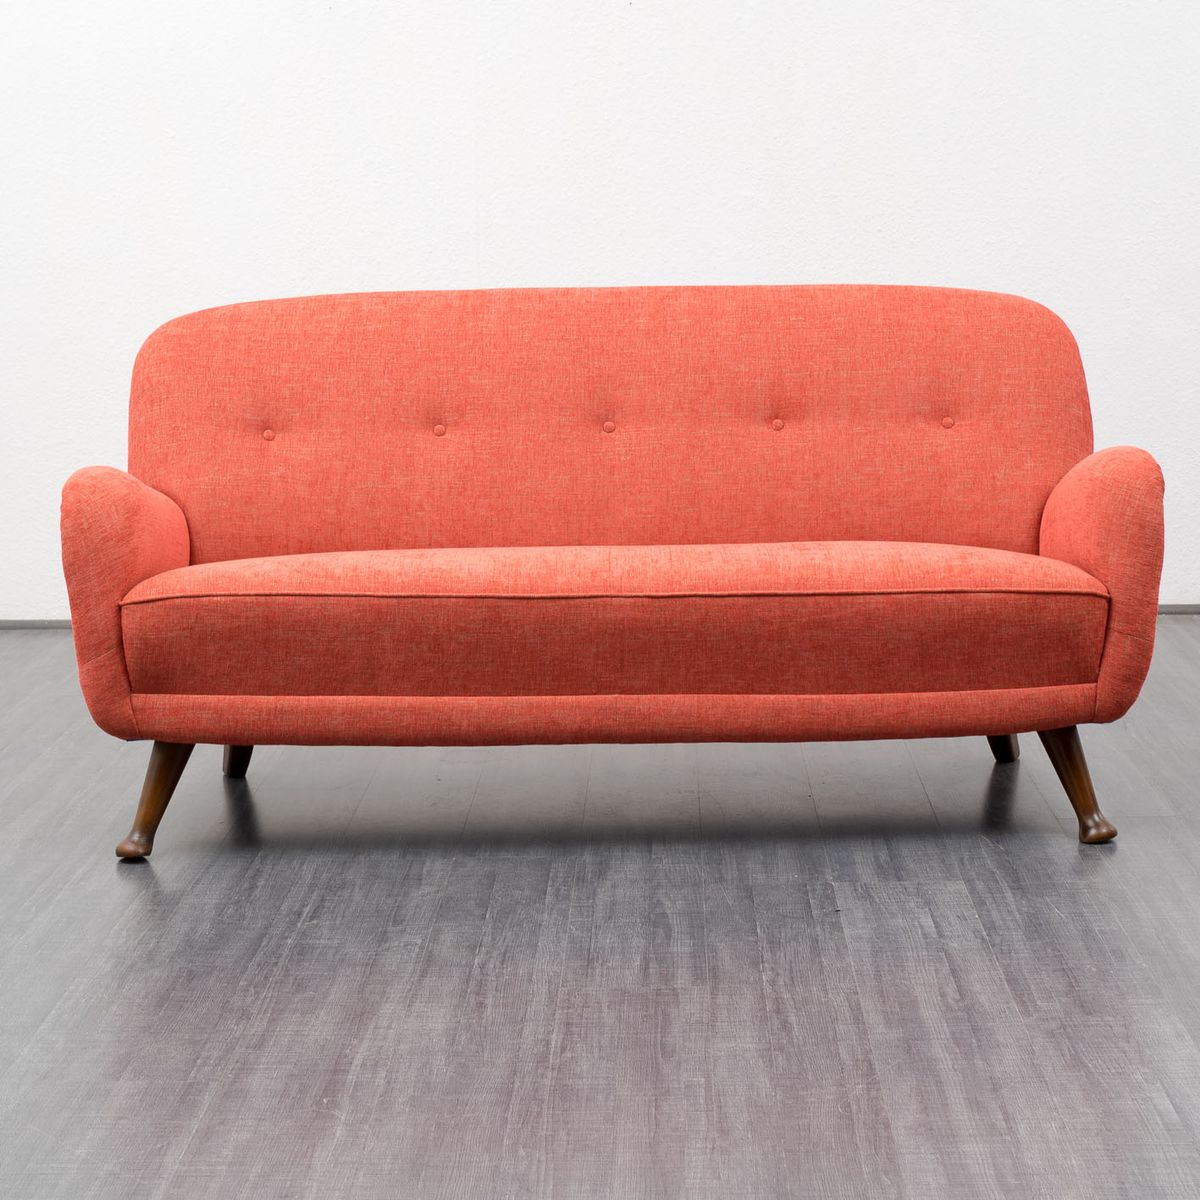 rotes mid century sofa deutschland 1950er bei pamono kaufen. Black Bedroom Furniture Sets. Home Design Ideas